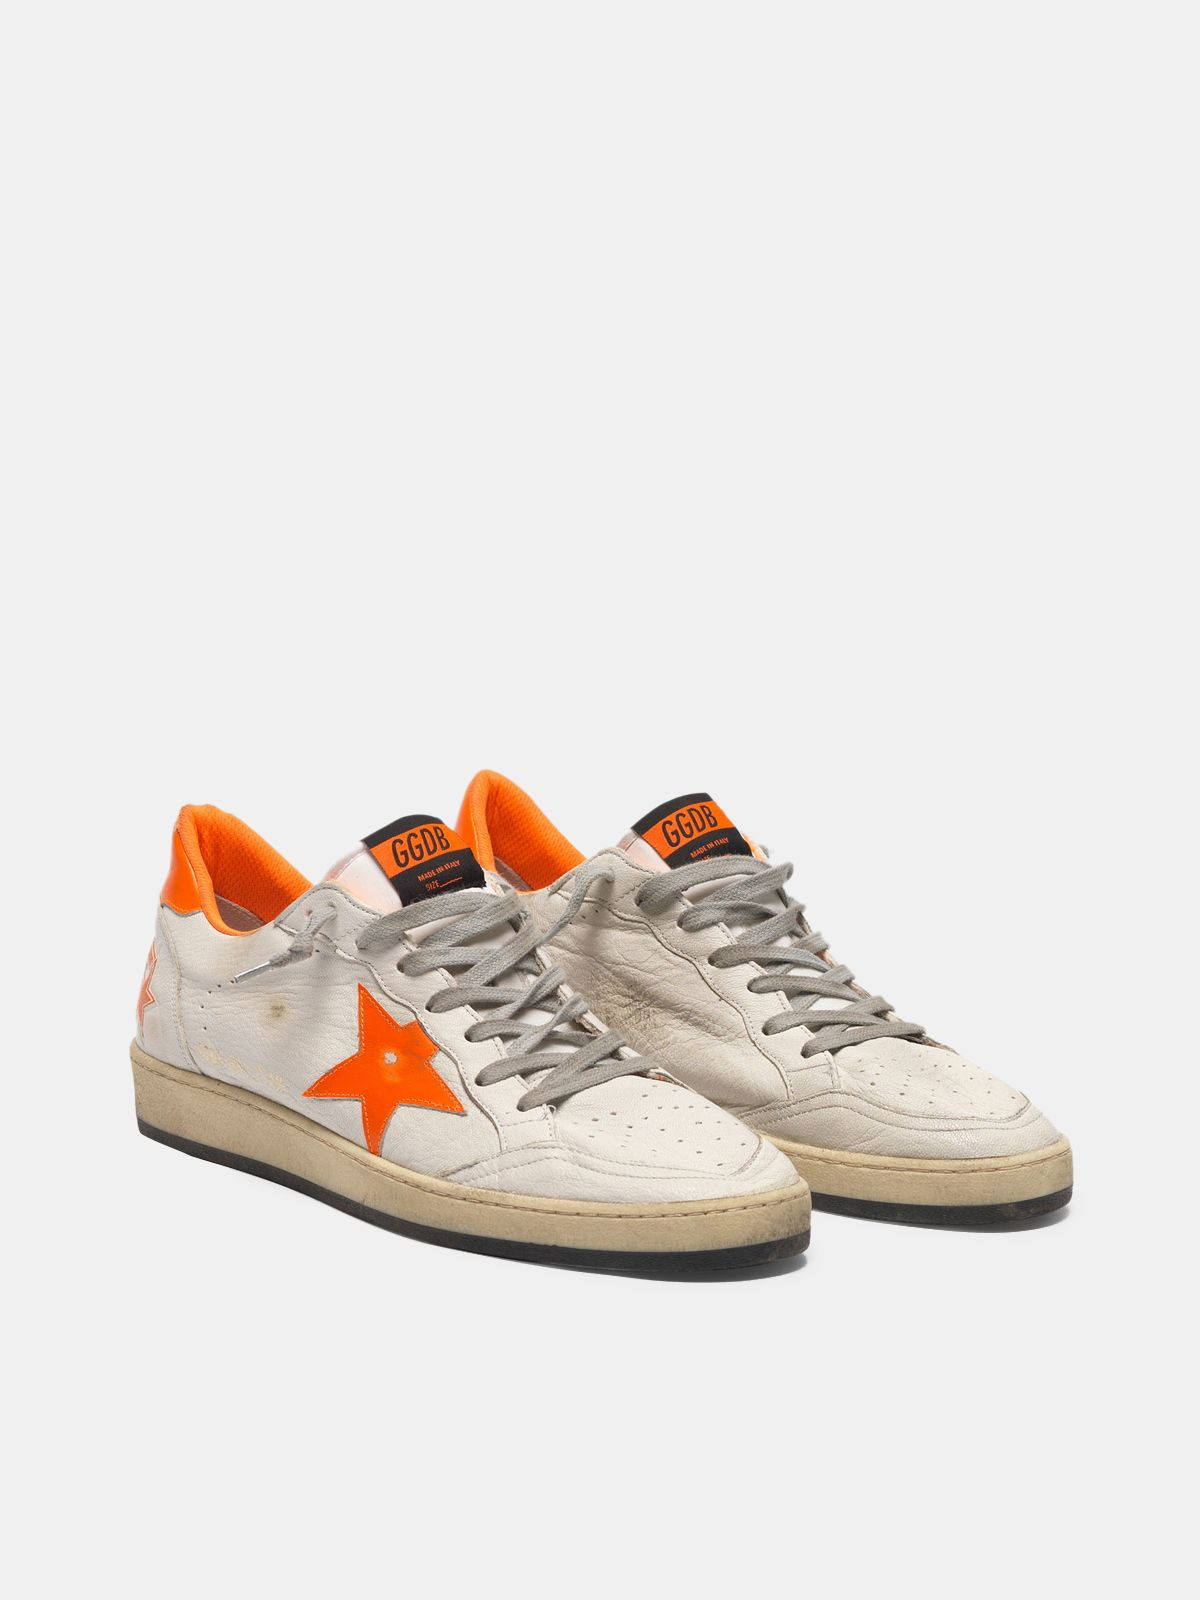 Golden Goose - Ball Star sneakers in leather with dayglow details and lining in